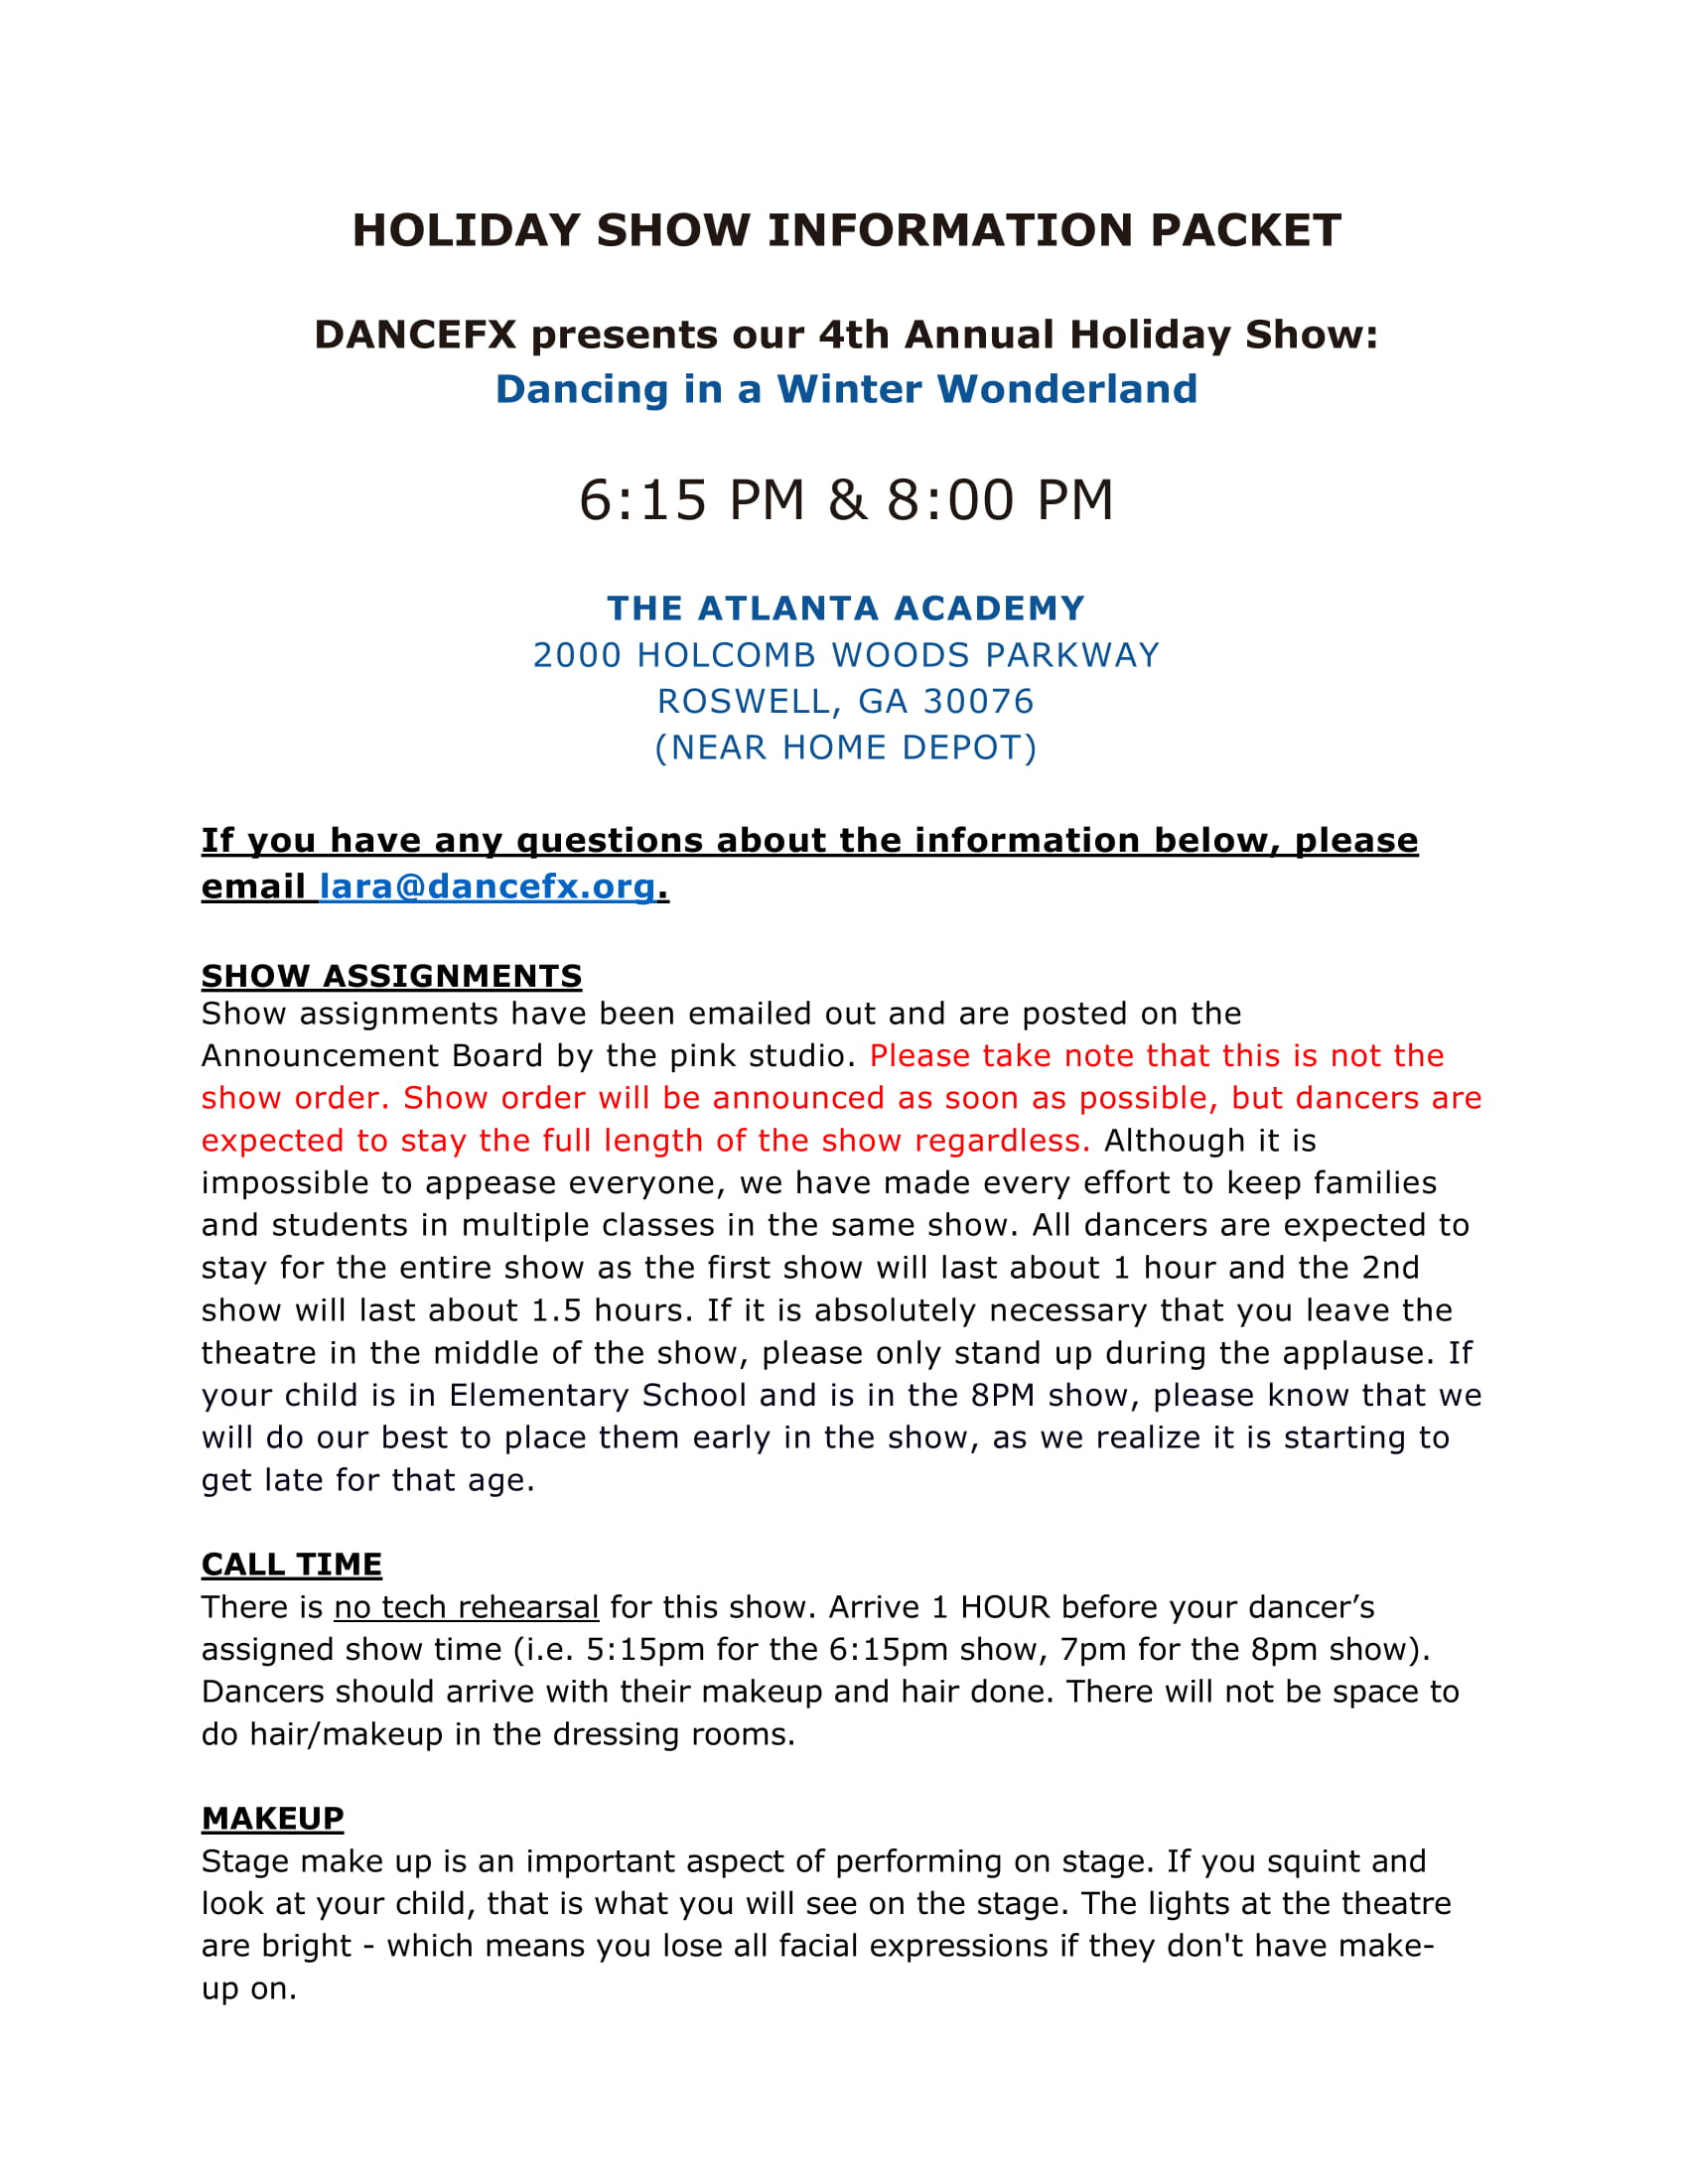 HOLIDAY SHOW INFORMATION PACKET-1.jpg